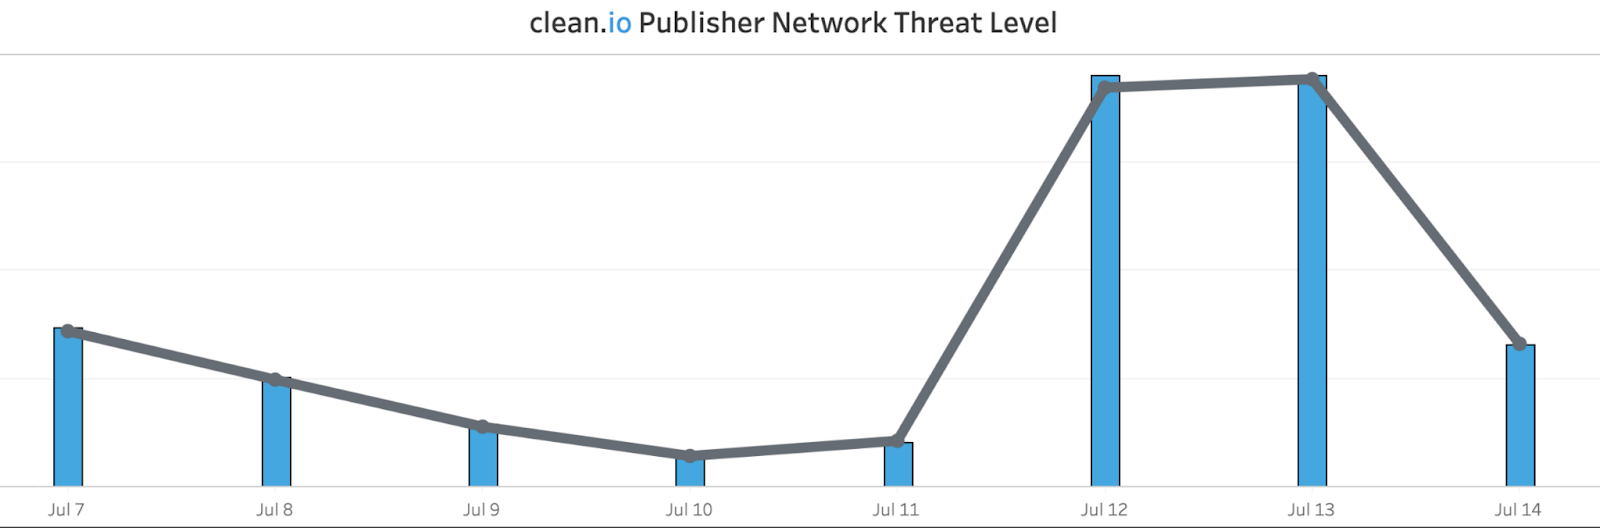 clean.io publisher network threat level